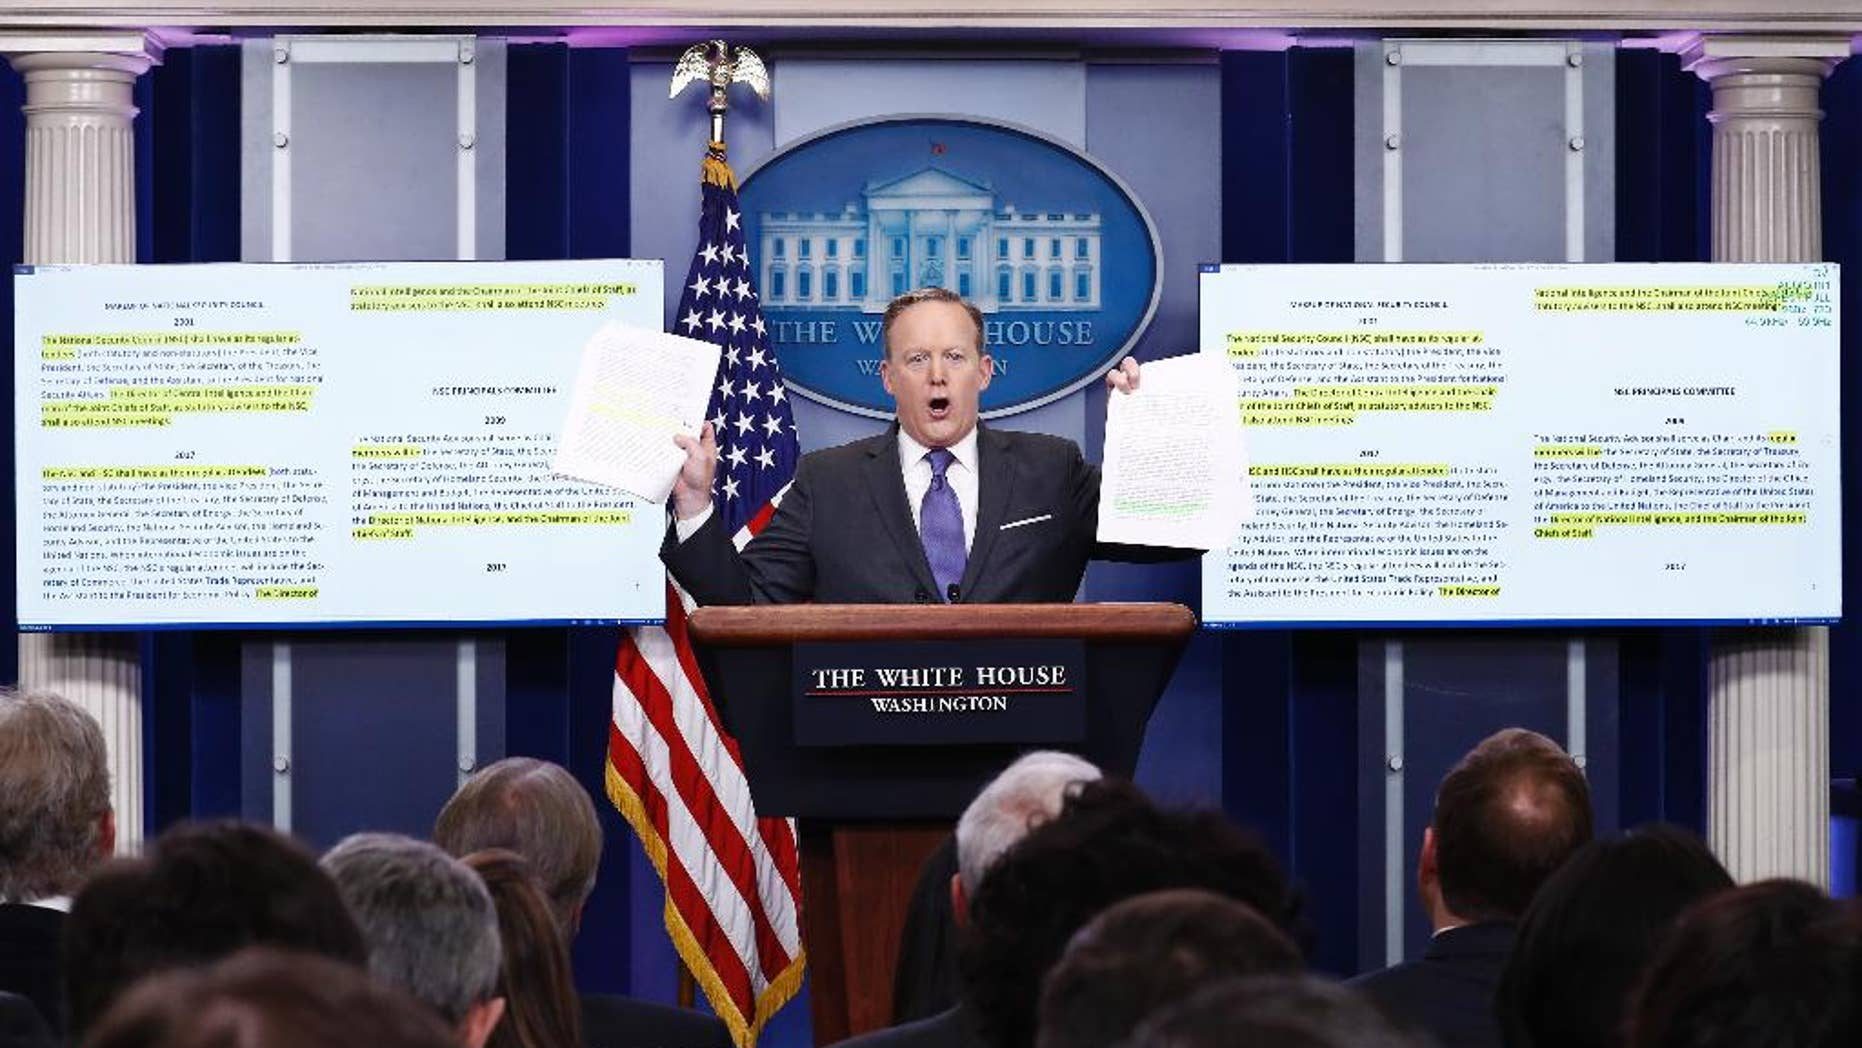 White House press secretary Sean Spicer holds up paperwork about the National Security Council as he speaks during the daily news briefing at the White House in Washington, Monday, Jan. 30, 2017. (AP Photo/Carolyn Kaster)